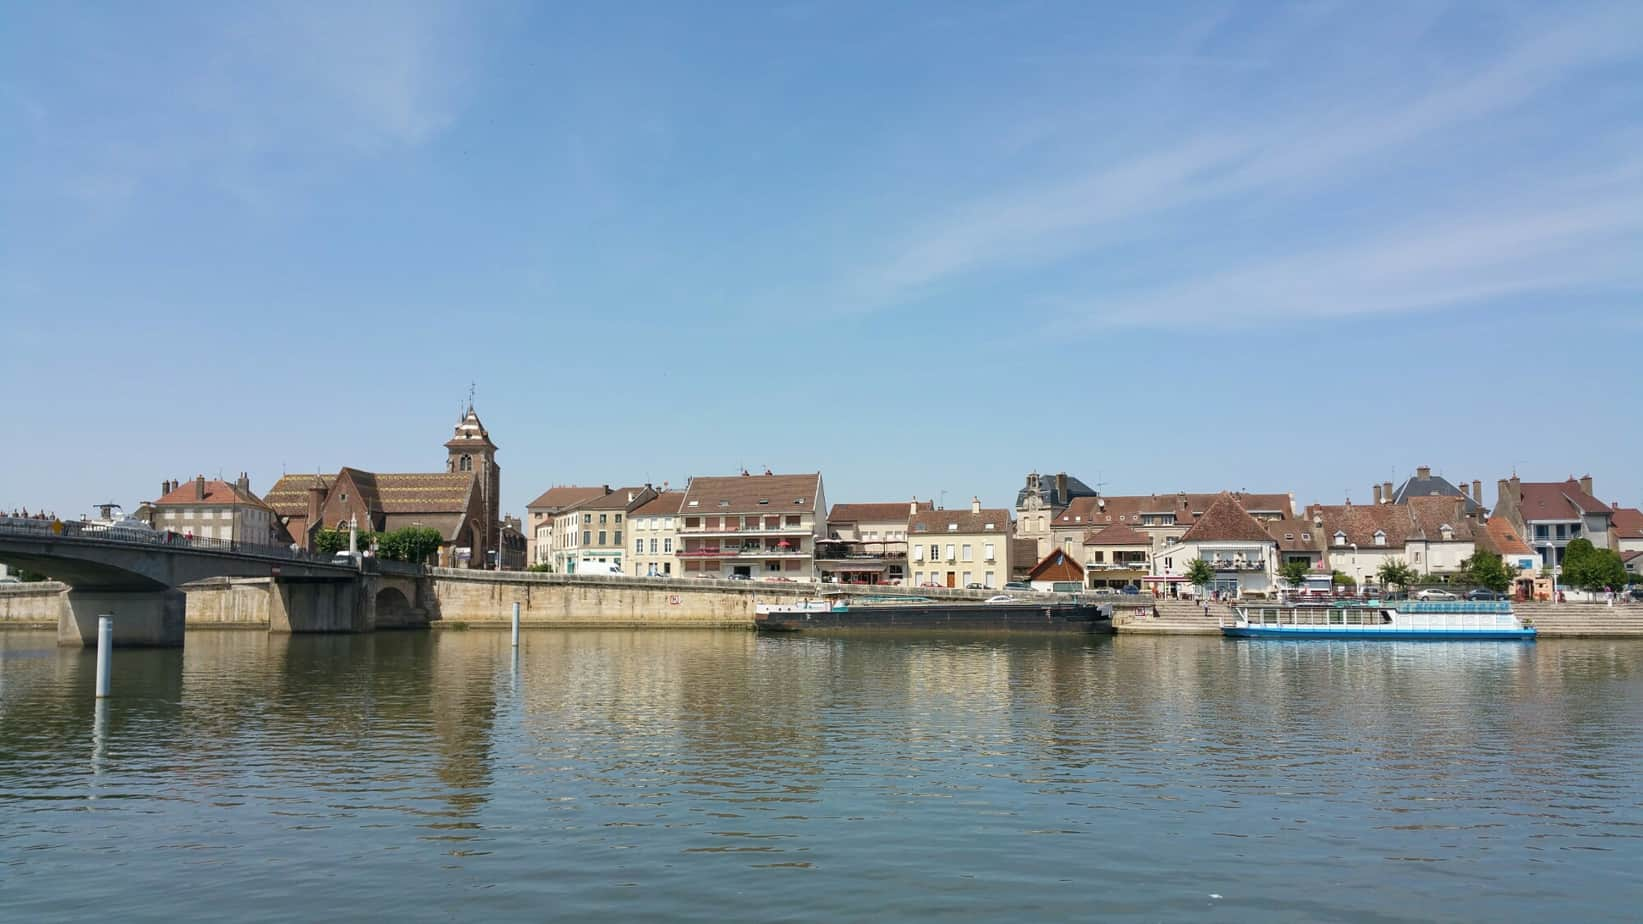 Chaumont to Villegusien-le-Lac and on to Chalons Sur Saone